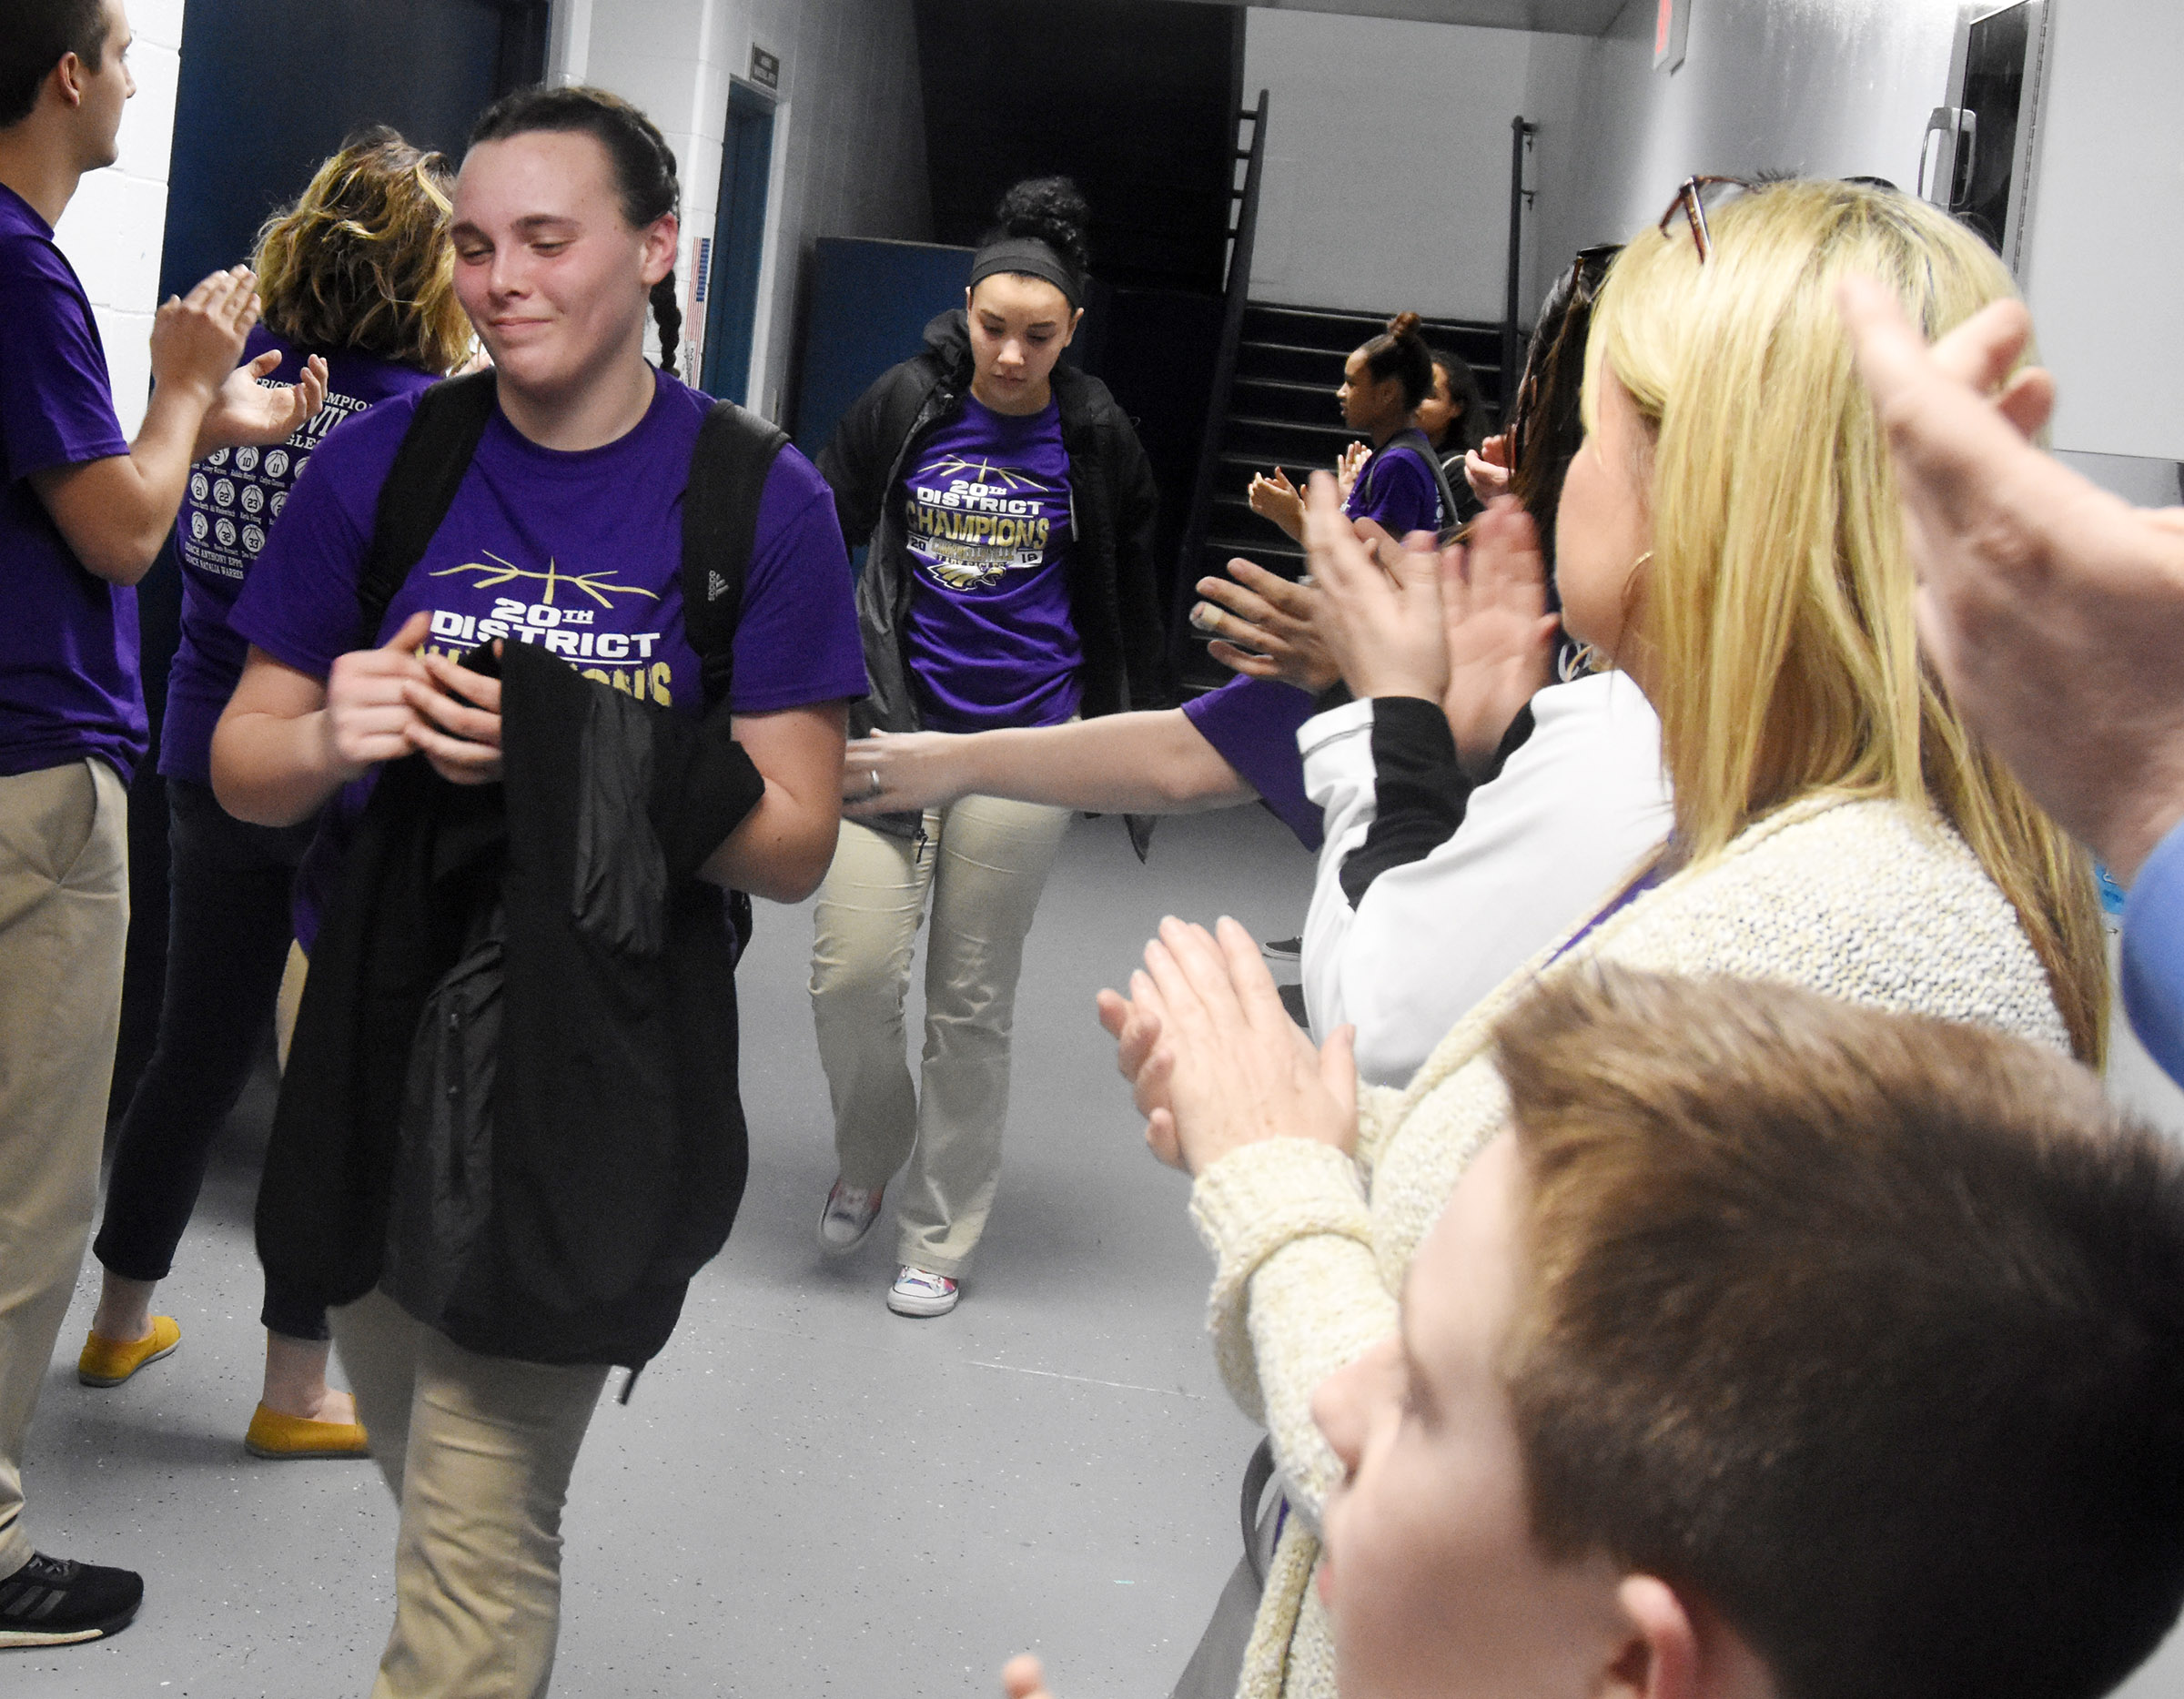 CHS sophomore Katelyn Miller is congratulated as she walks out of the locker room.